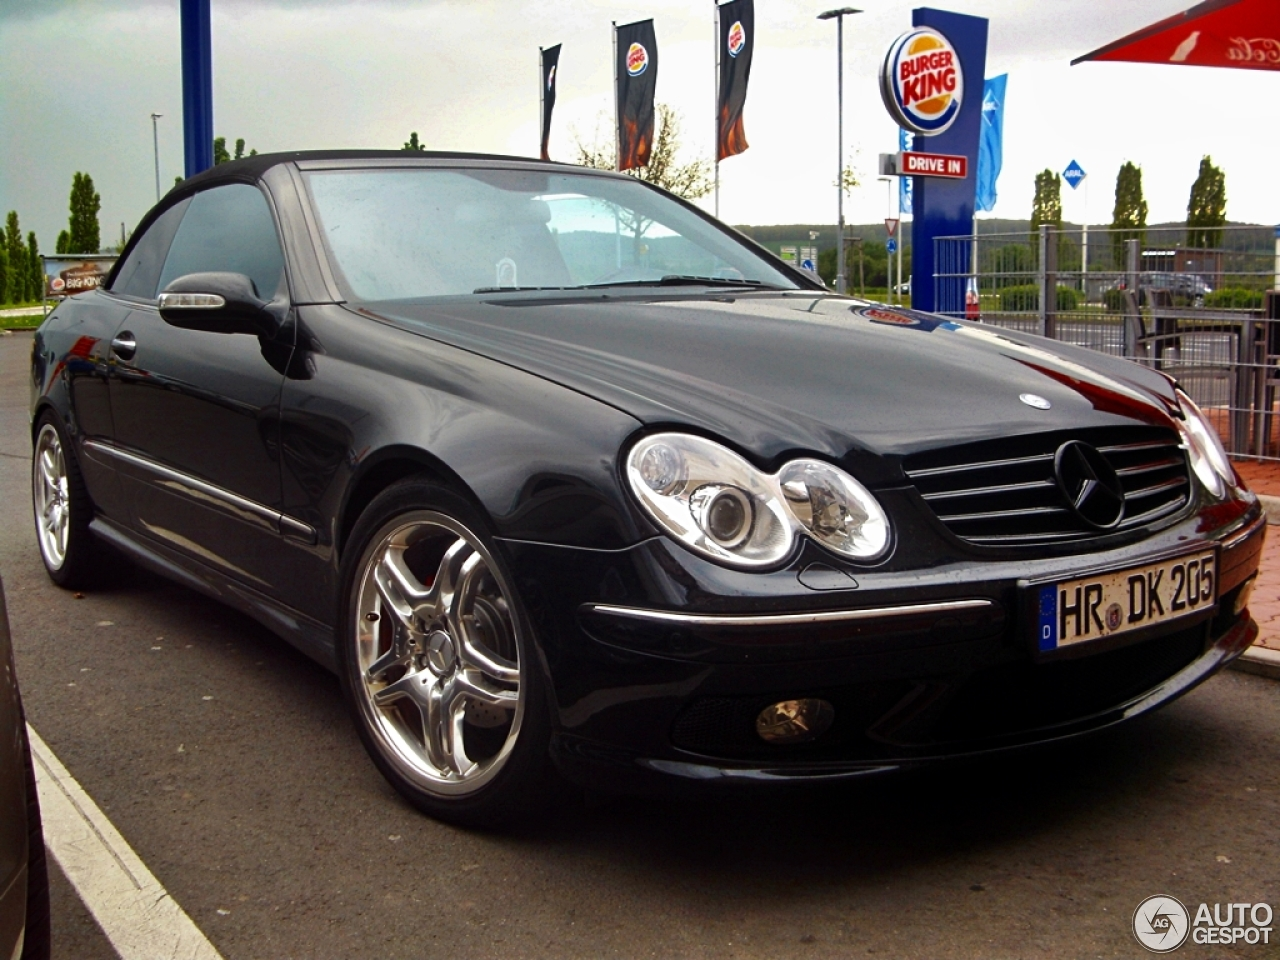 Mercedes benz clk 63 amg cabriolet 11 mai 2013 autogespot for Mercedes benz clk 63 amg